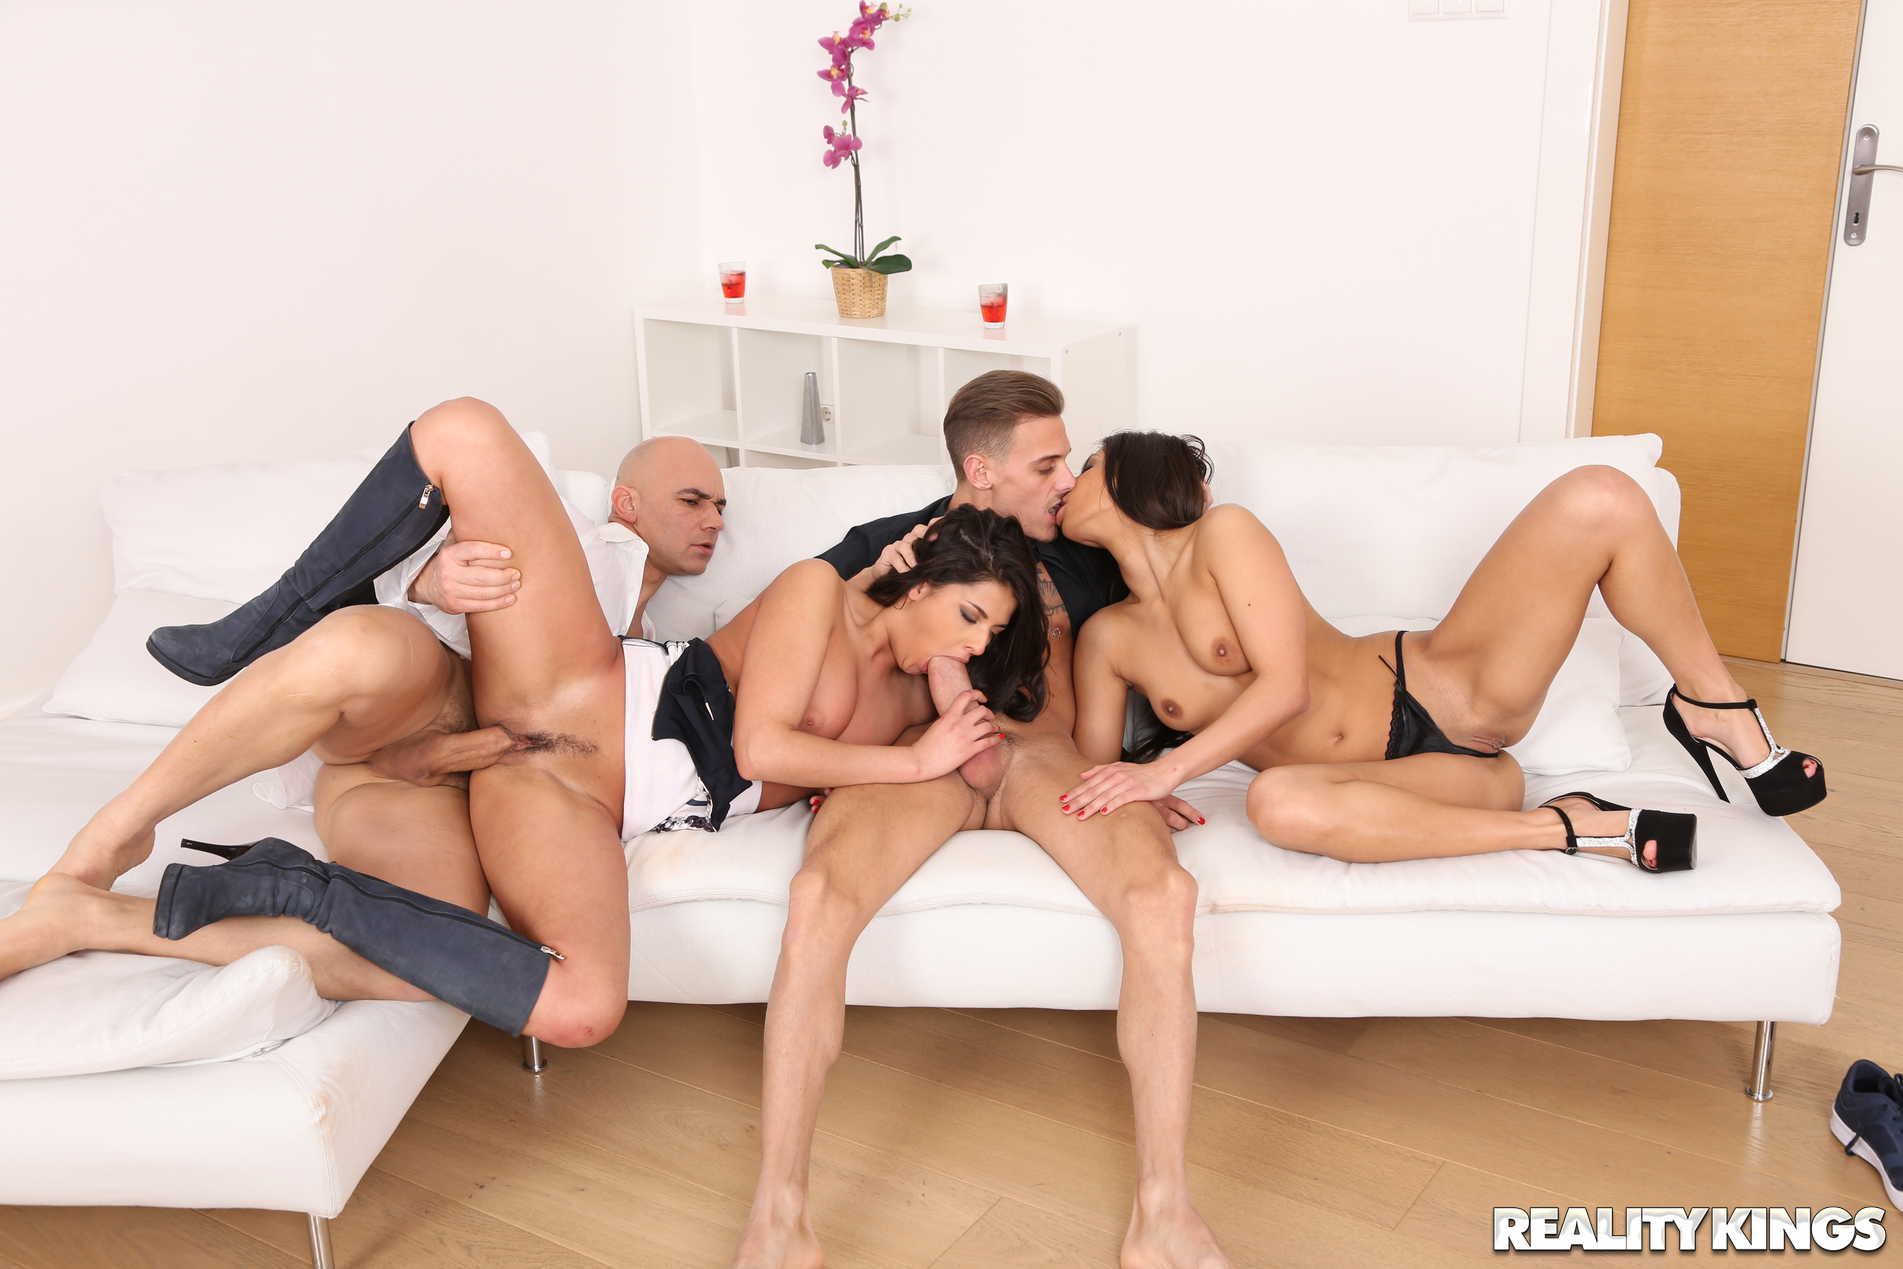 Reality Kings 'Double Date' starring Coco Demal (Photo 120)